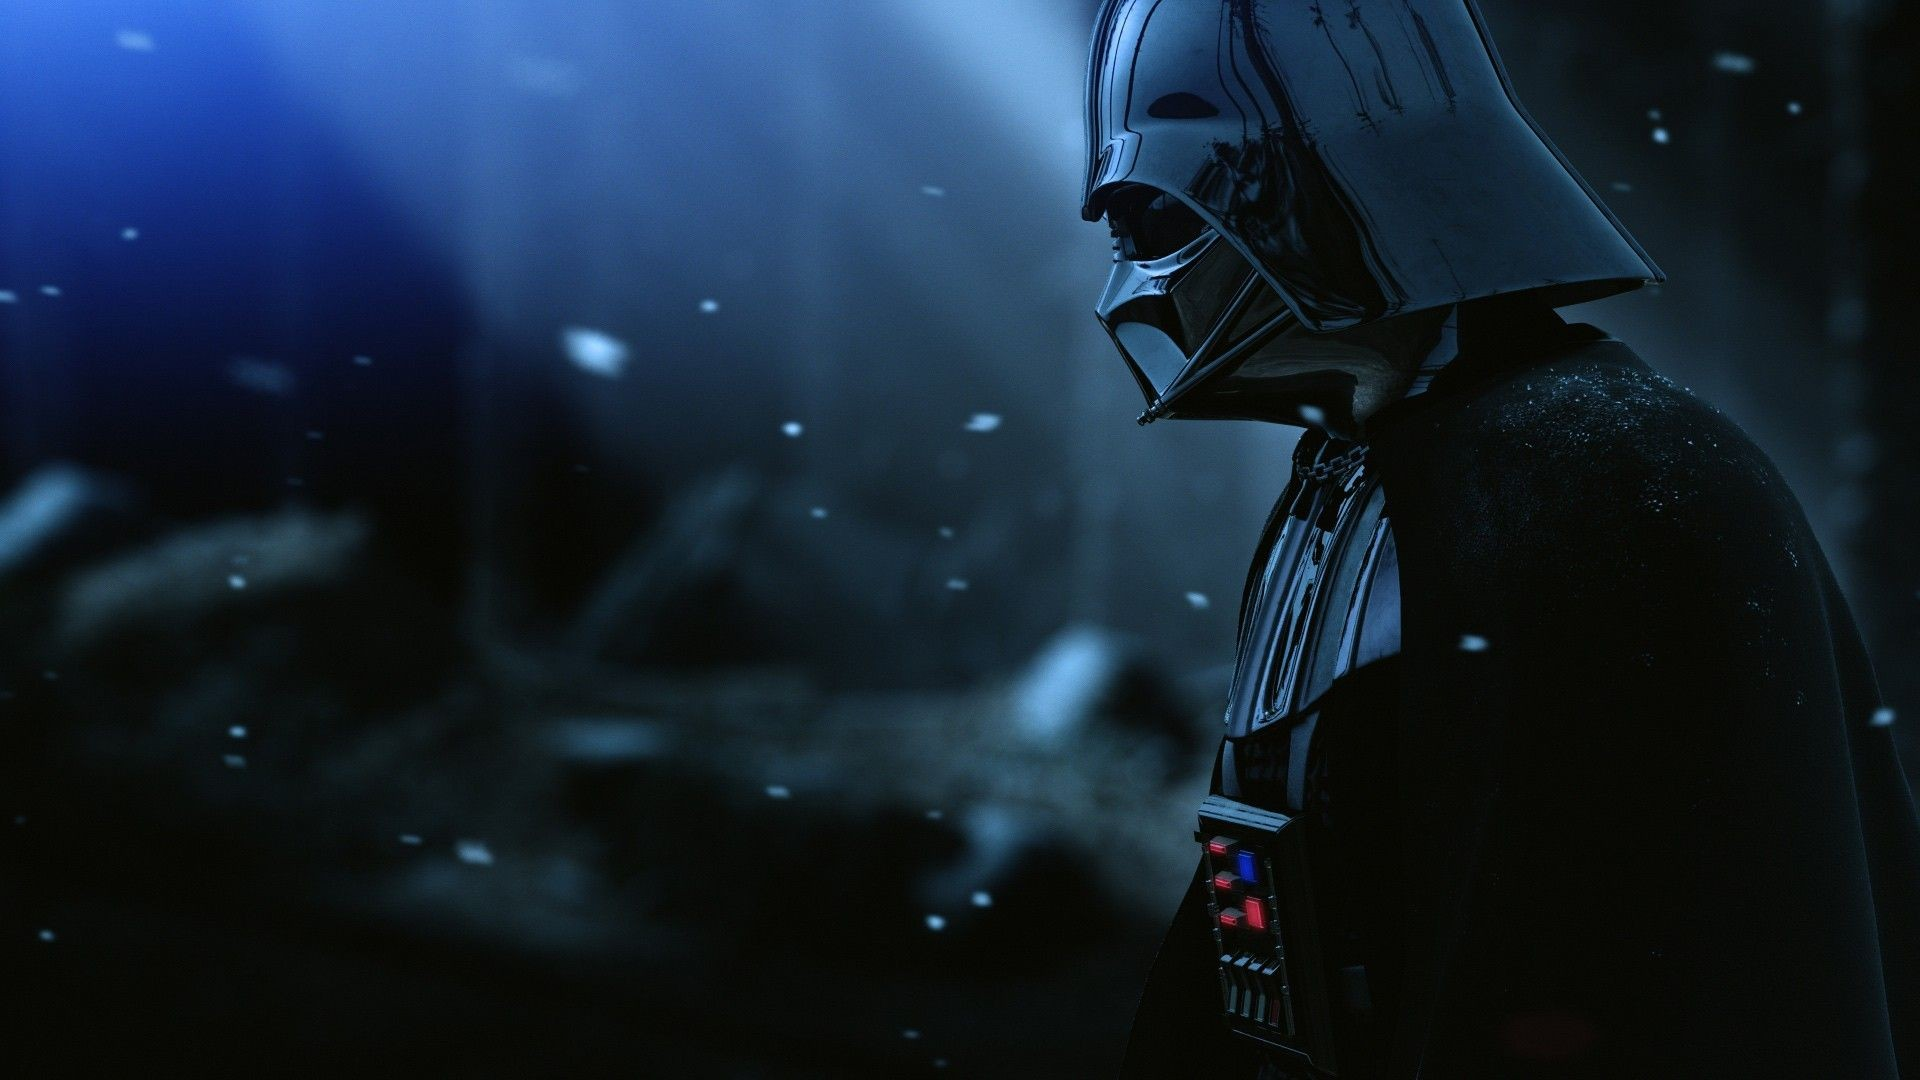 50 hd star wars - photo #14